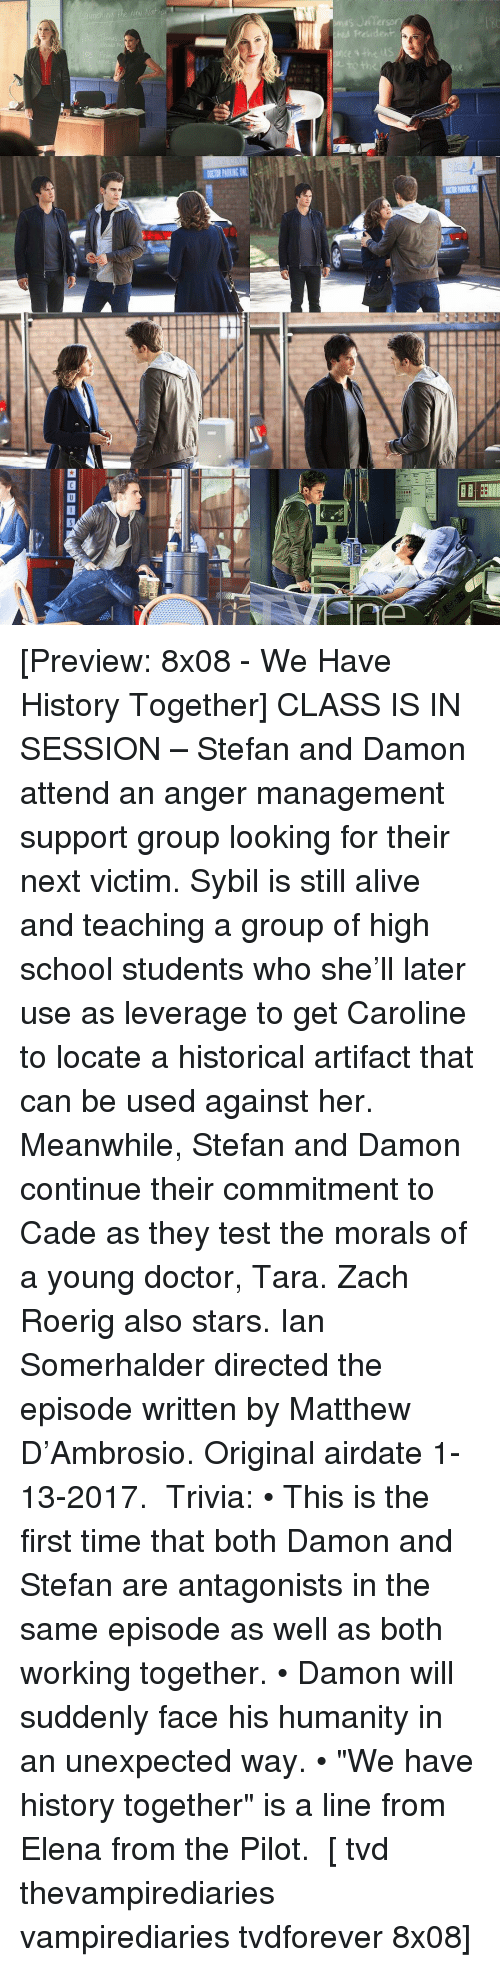 """Anger Management: ーーーラRE illm  DOORPASEN [Preview: 8x08 - We Have History Together] CLASS IS IN SESSION – Stefan and Damon attend an anger management support group looking for their next victim. Sybil is still alive and teaching a group of high school students who she'll later use as leverage to get Caroline to locate a historical artifact that can be used against her. Meanwhile, Stefan and Damon continue their commitment to Cade as they test the morals of a young doctor, Tara. Zach Roerig also stars. Ian Somerhalder directed the episode written by Matthew D'Ambrosio. Original airdate 1-13-2017. ⠀ Trivia: • This is the first time that both Damon and Stefan are antagonists in the same episode as well as both working together. • Damon will suddenly face his humanity in an unexpected way. • """"We have history together"""" is a line from Elena from the Pilot. ⠀ [ tvd thevampirediaries vampirediaries tvdforever 8x08]"""